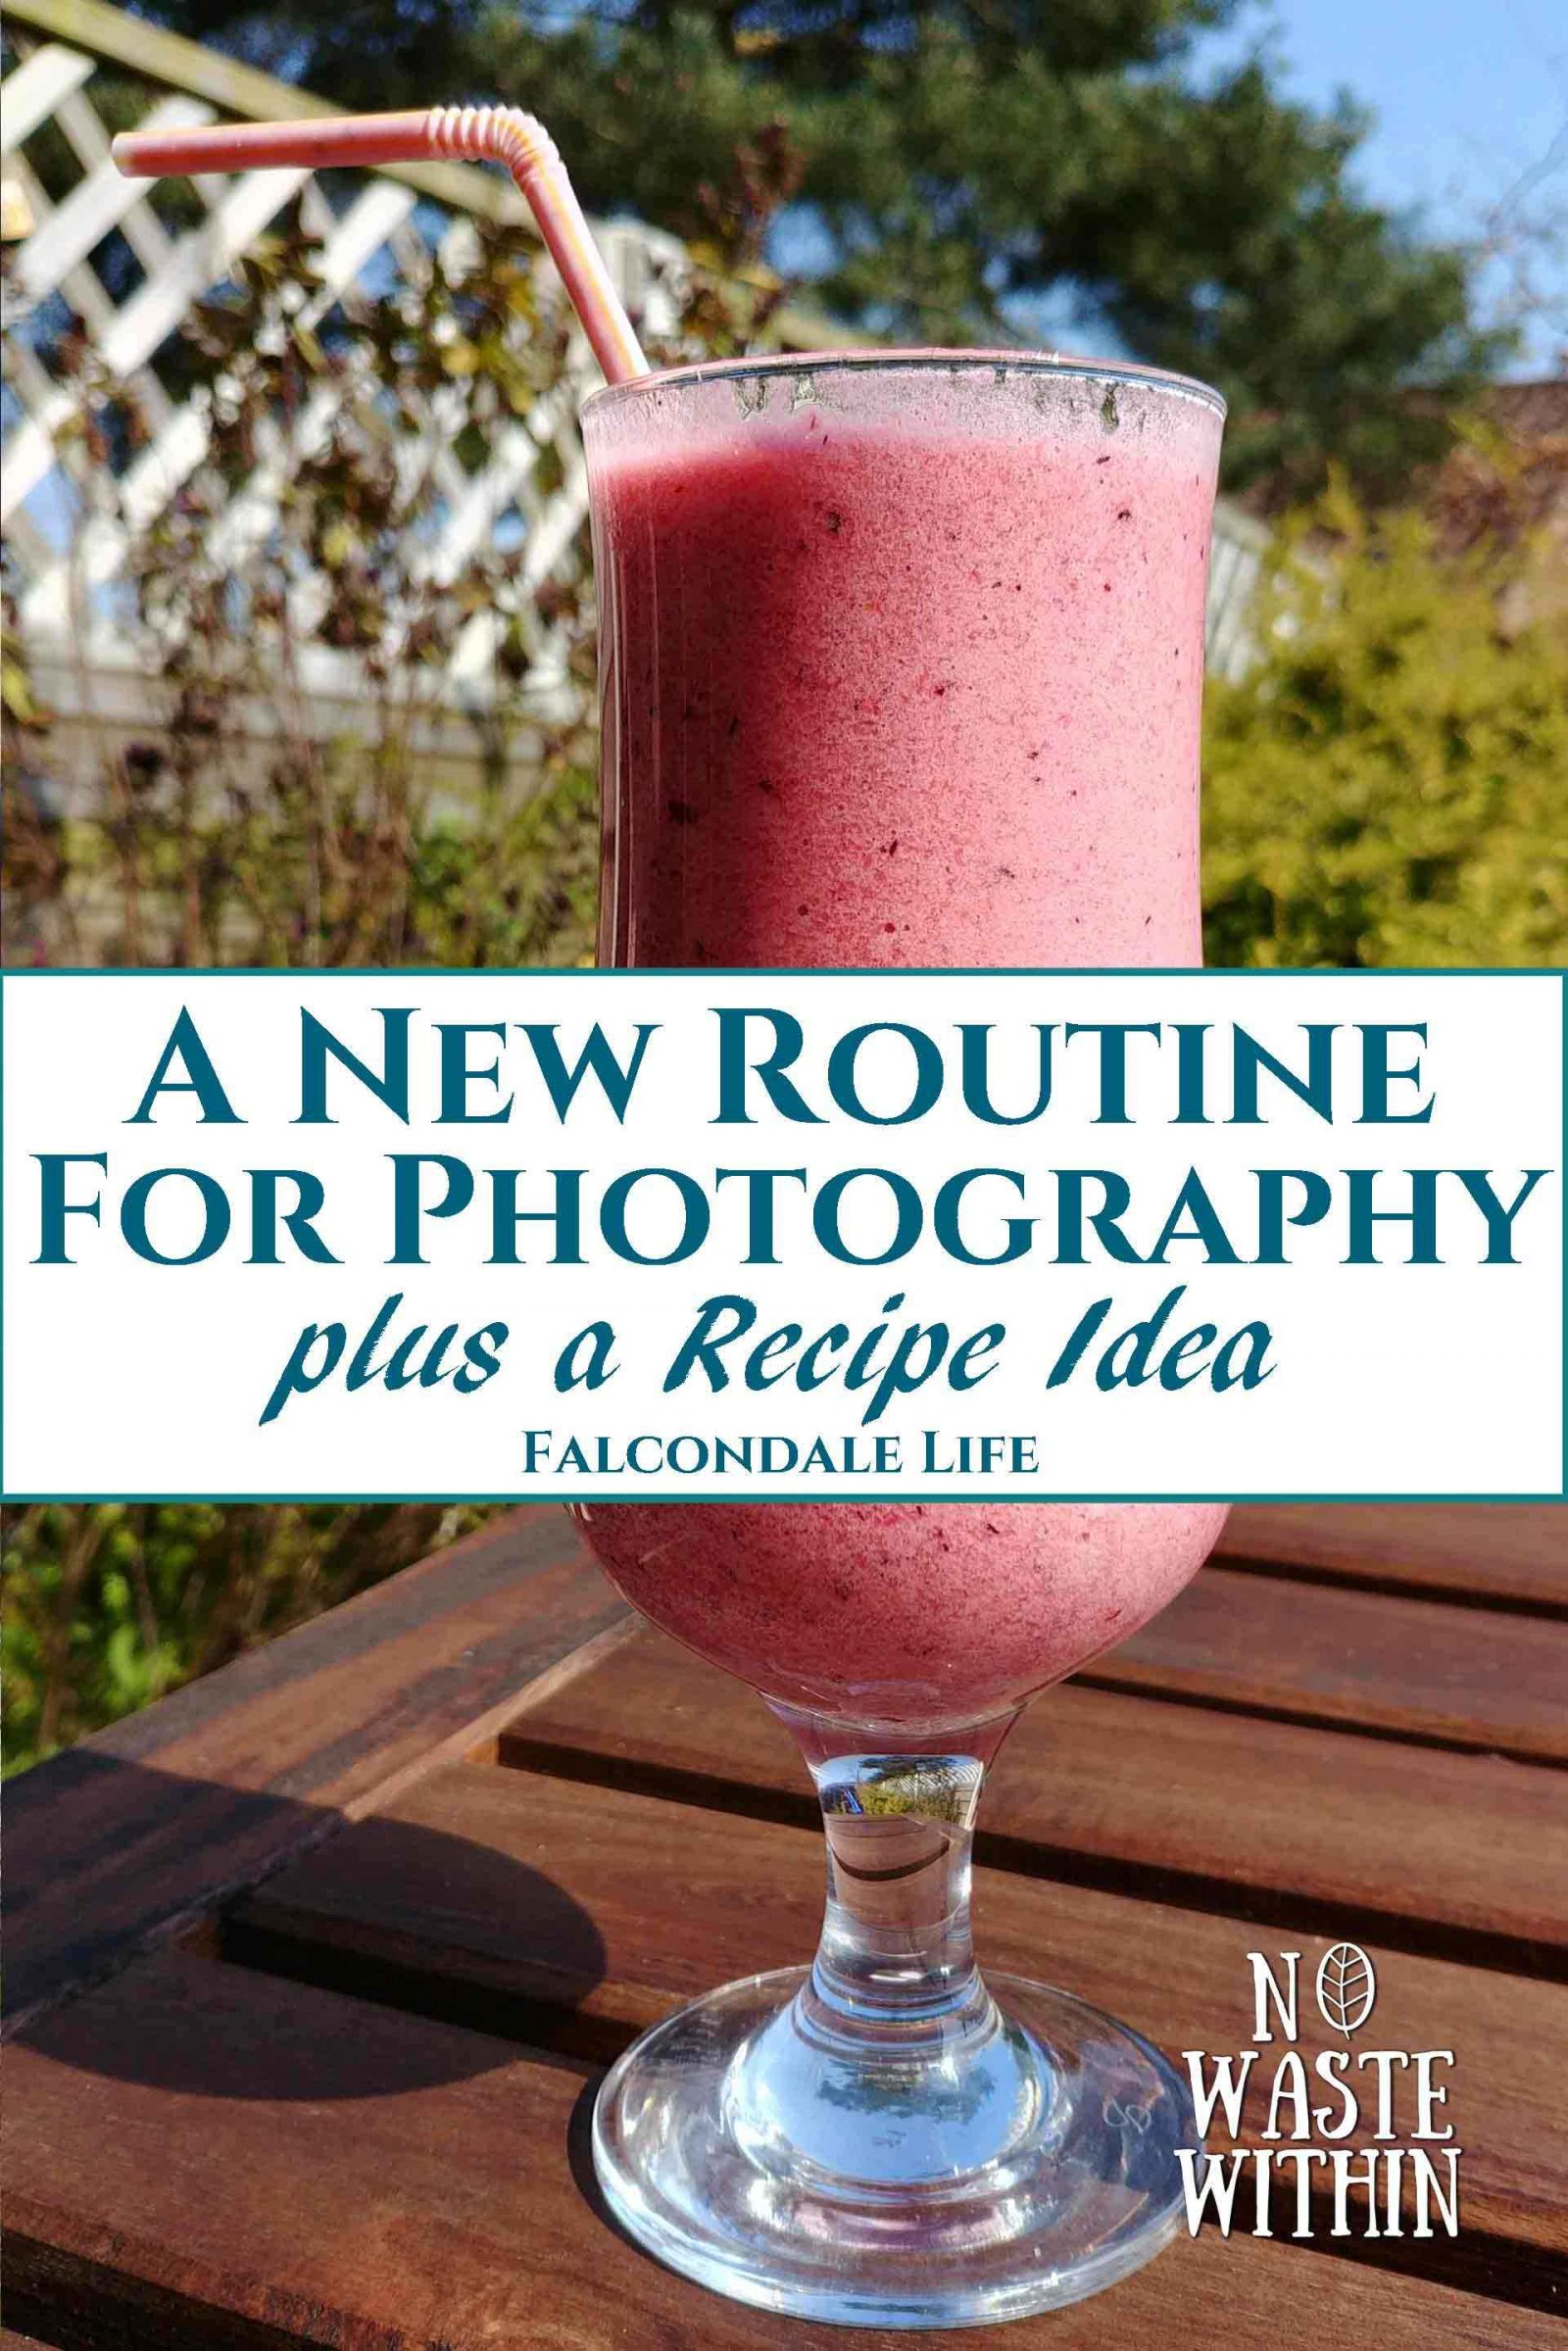 A new routine for photography and a recipe idea on Falcondale Life blog. Recipe ideas for smoothies and also announcing a new blog series on auto mode photography. Image description: a tall glass of pink smoothie on a garden table plus blog title.